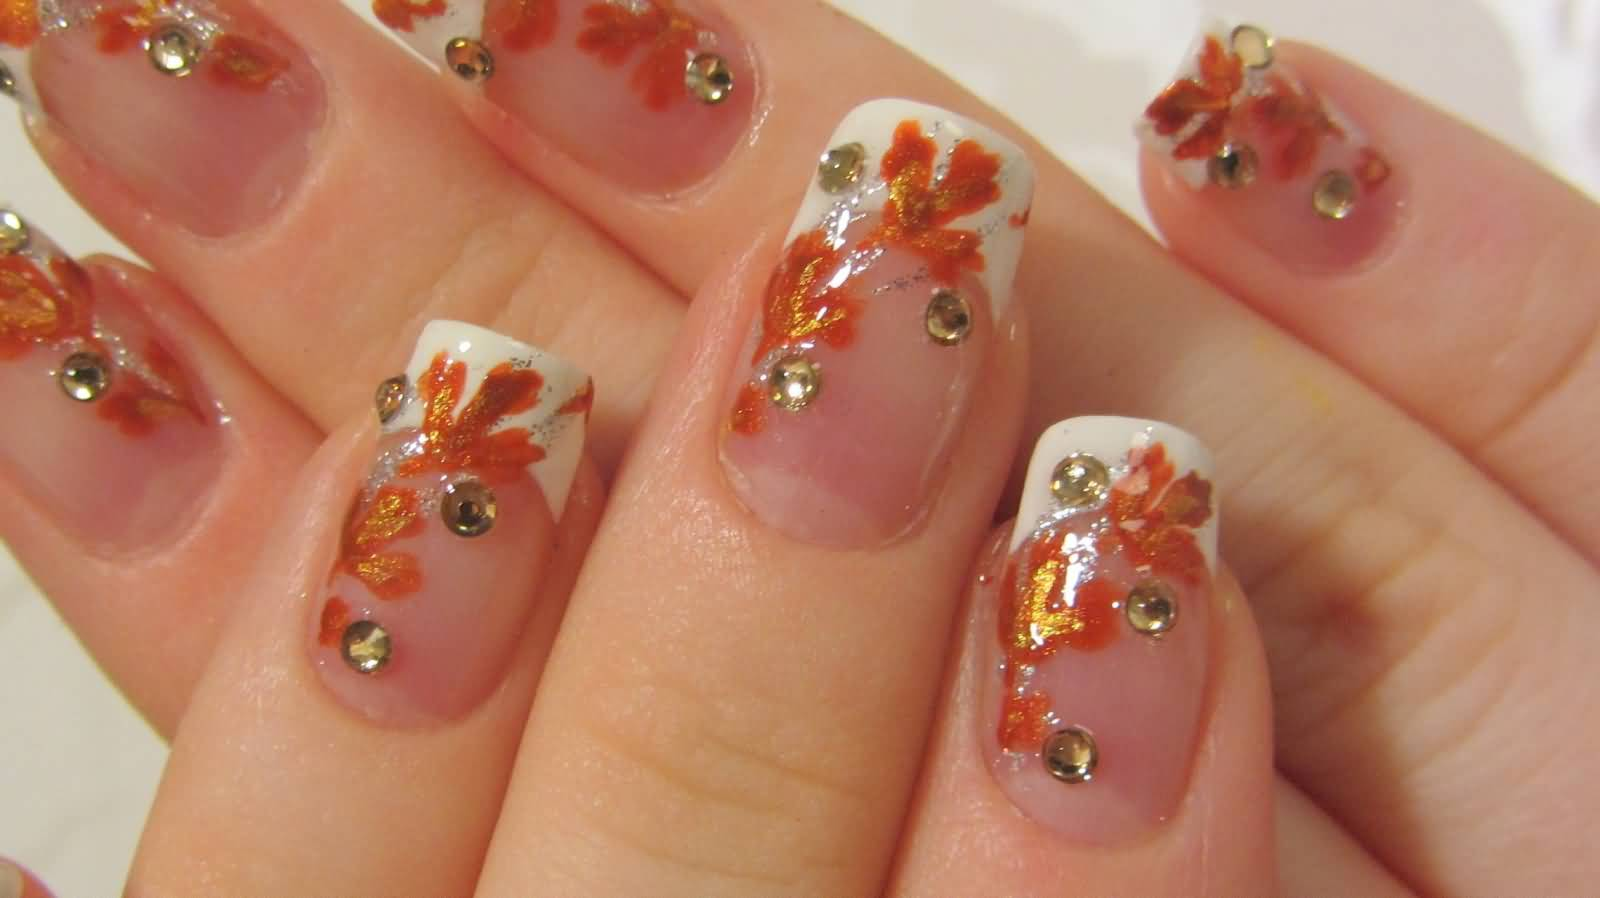 white-tip-with-orange-leaves-nail-art